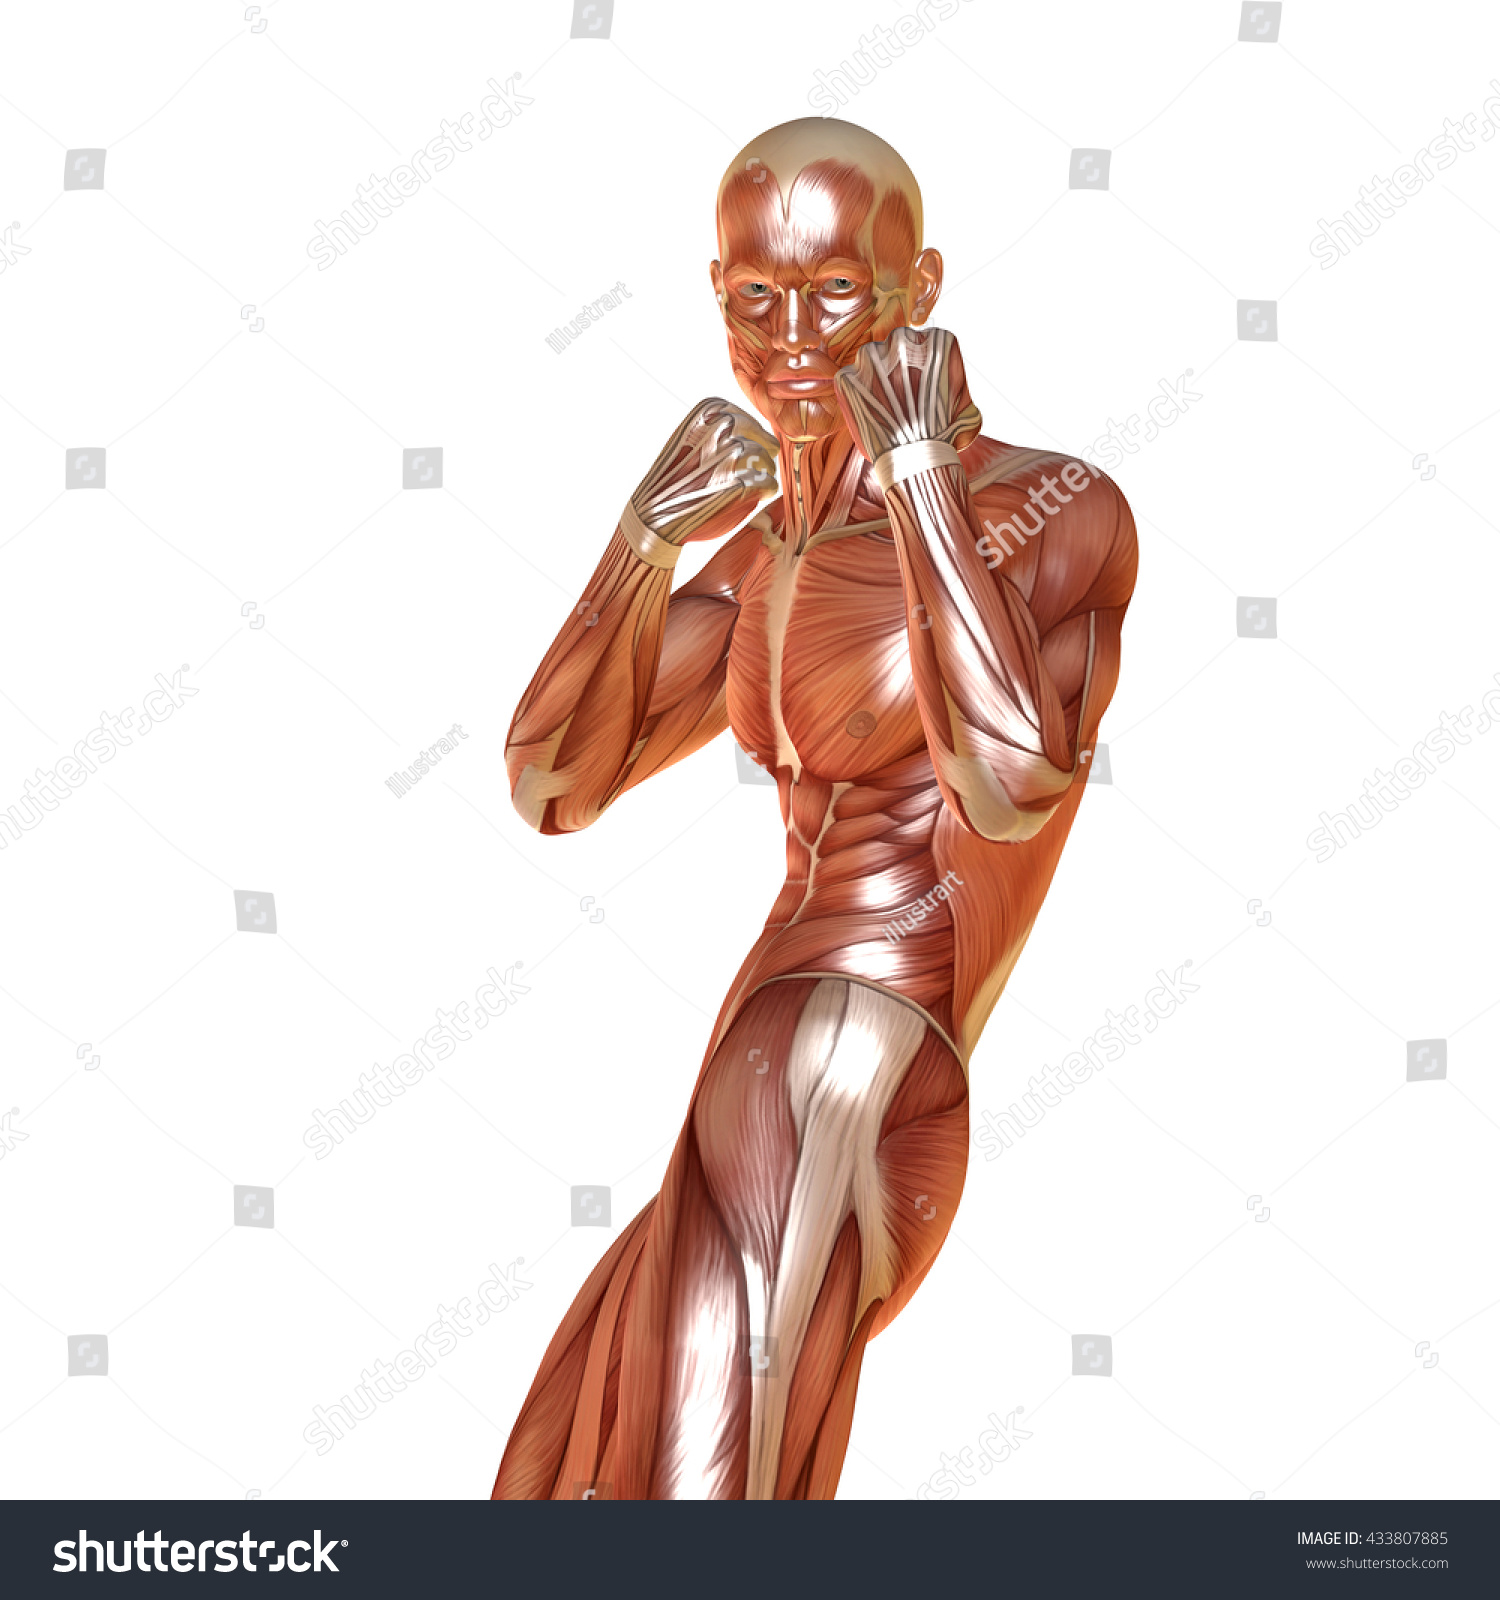 Royalty Free Stock Illustration Of 3 D Render Male Muscular Anatomy